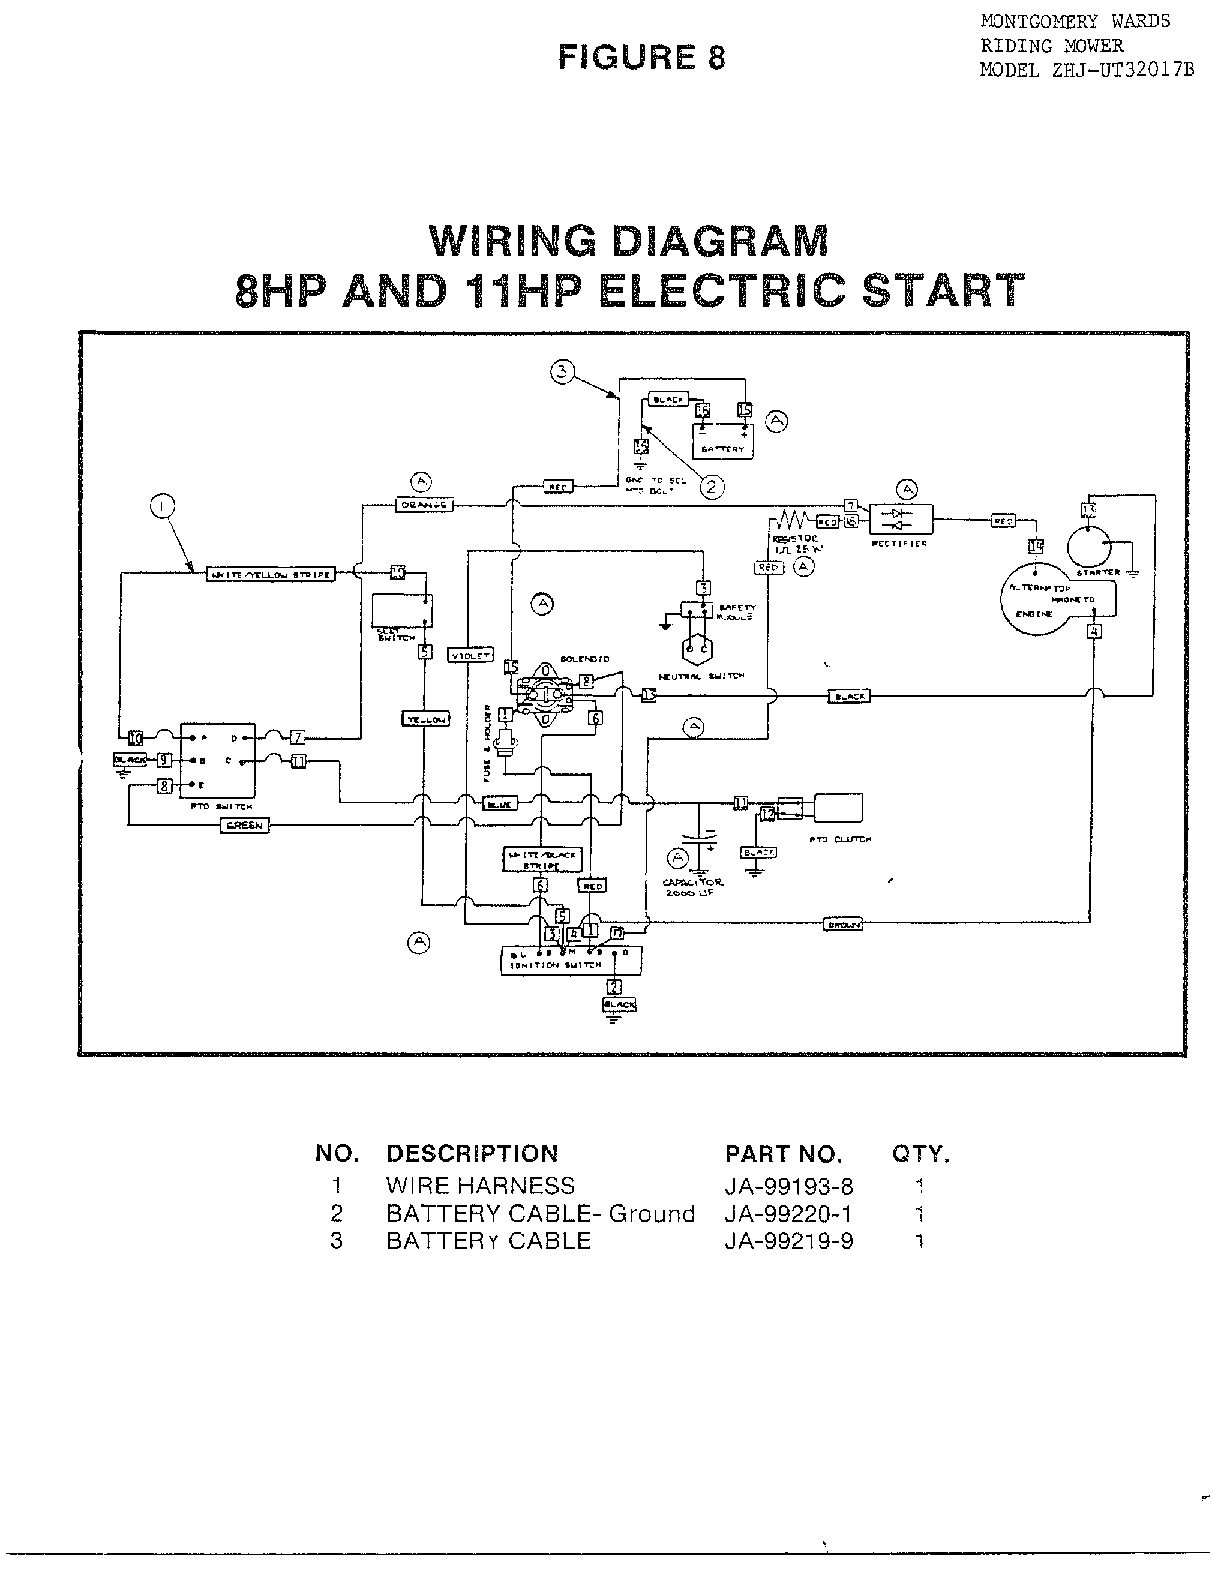 Briggs And Stratton 12 5 Hp Wiring Diagram Reinvent Your Lawn Mower Ignition Switch On Engine 16 Zef Jam Rh Zefjam Net